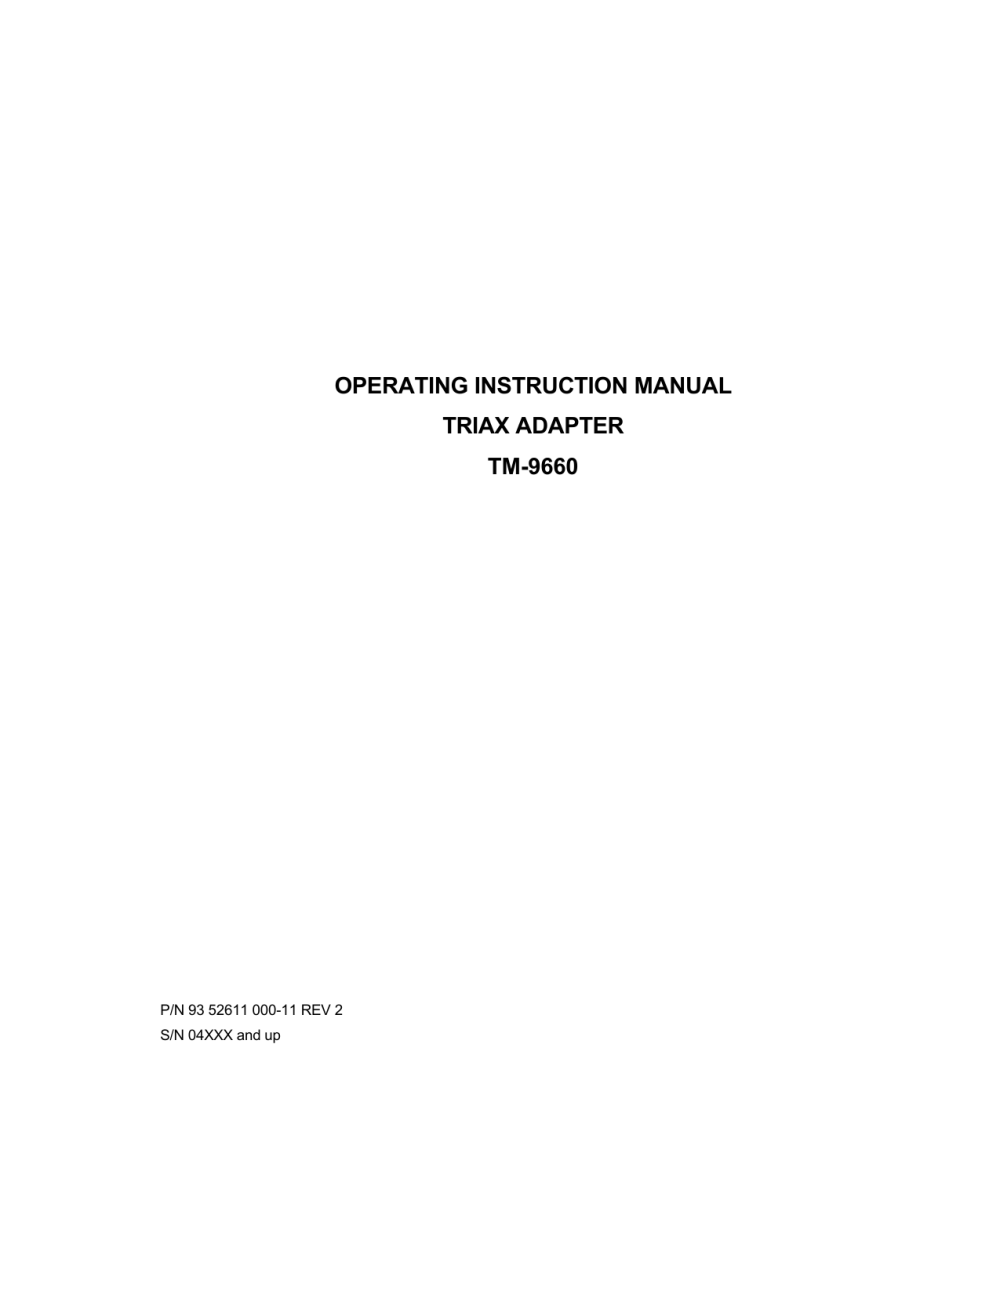 medium resolution of operating instruction manual triax adapter tm 9660